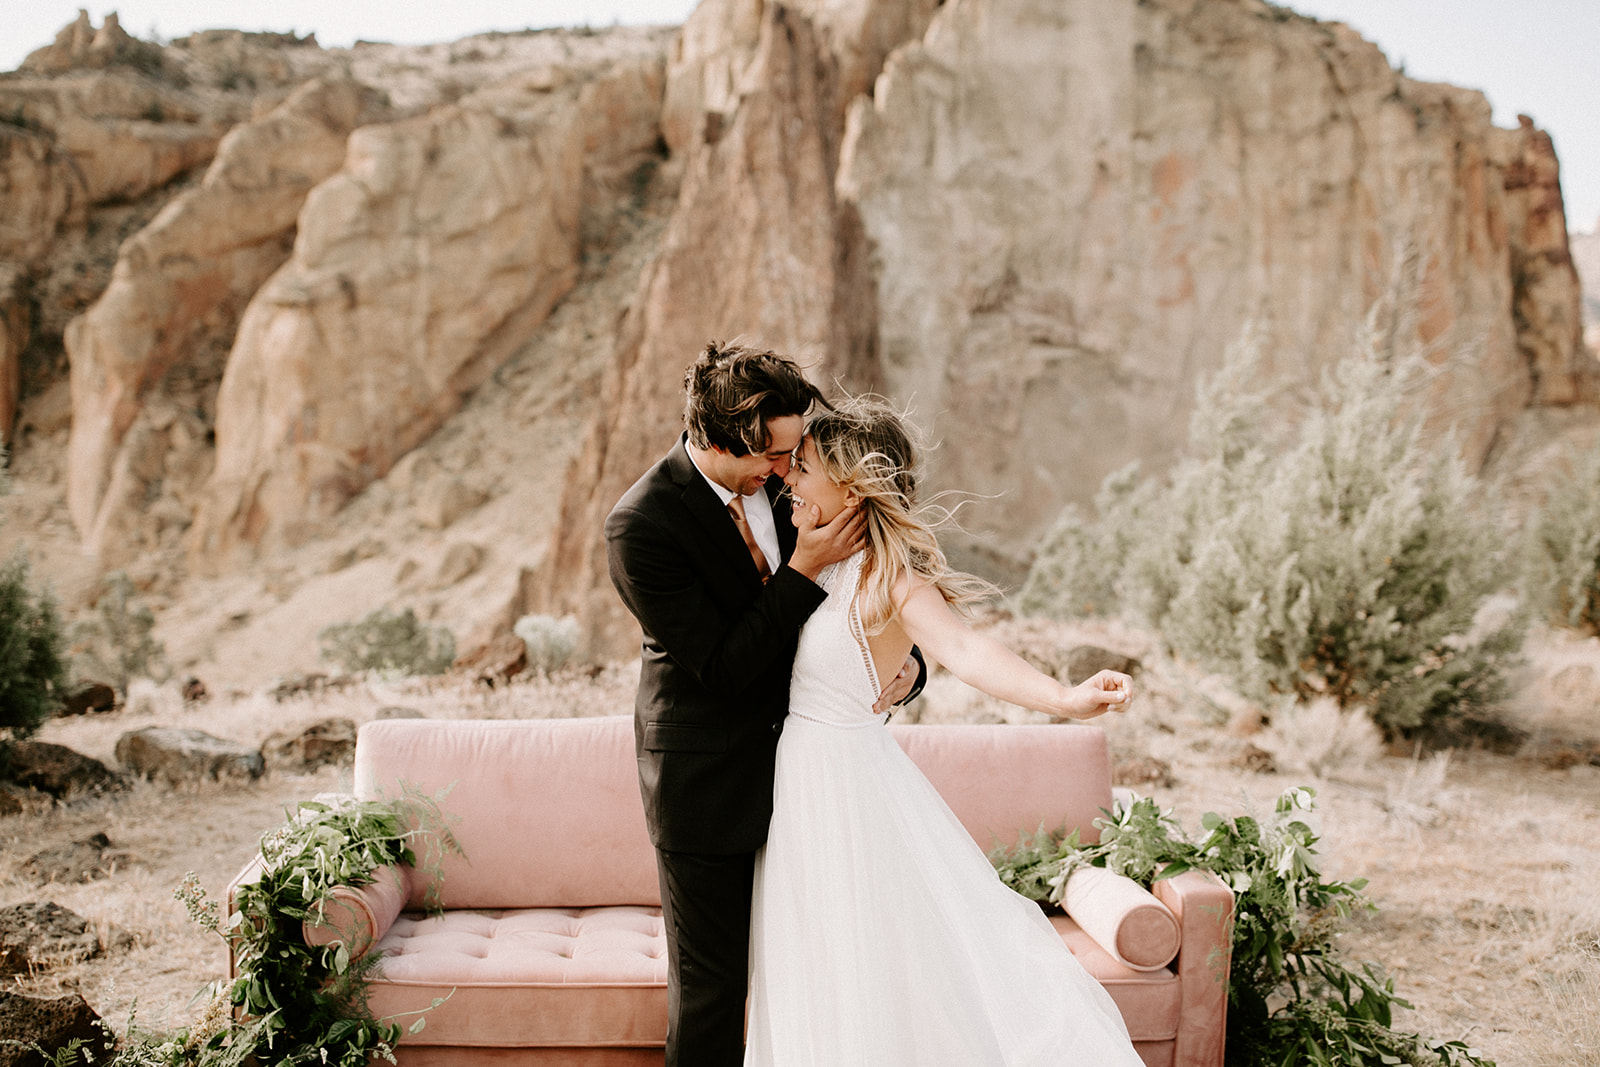 SmithRockElopement+specialty+lounge+wedding+event+rentals+Bend+Oregon+Curated+Dawn+Charles+Photo.jpg